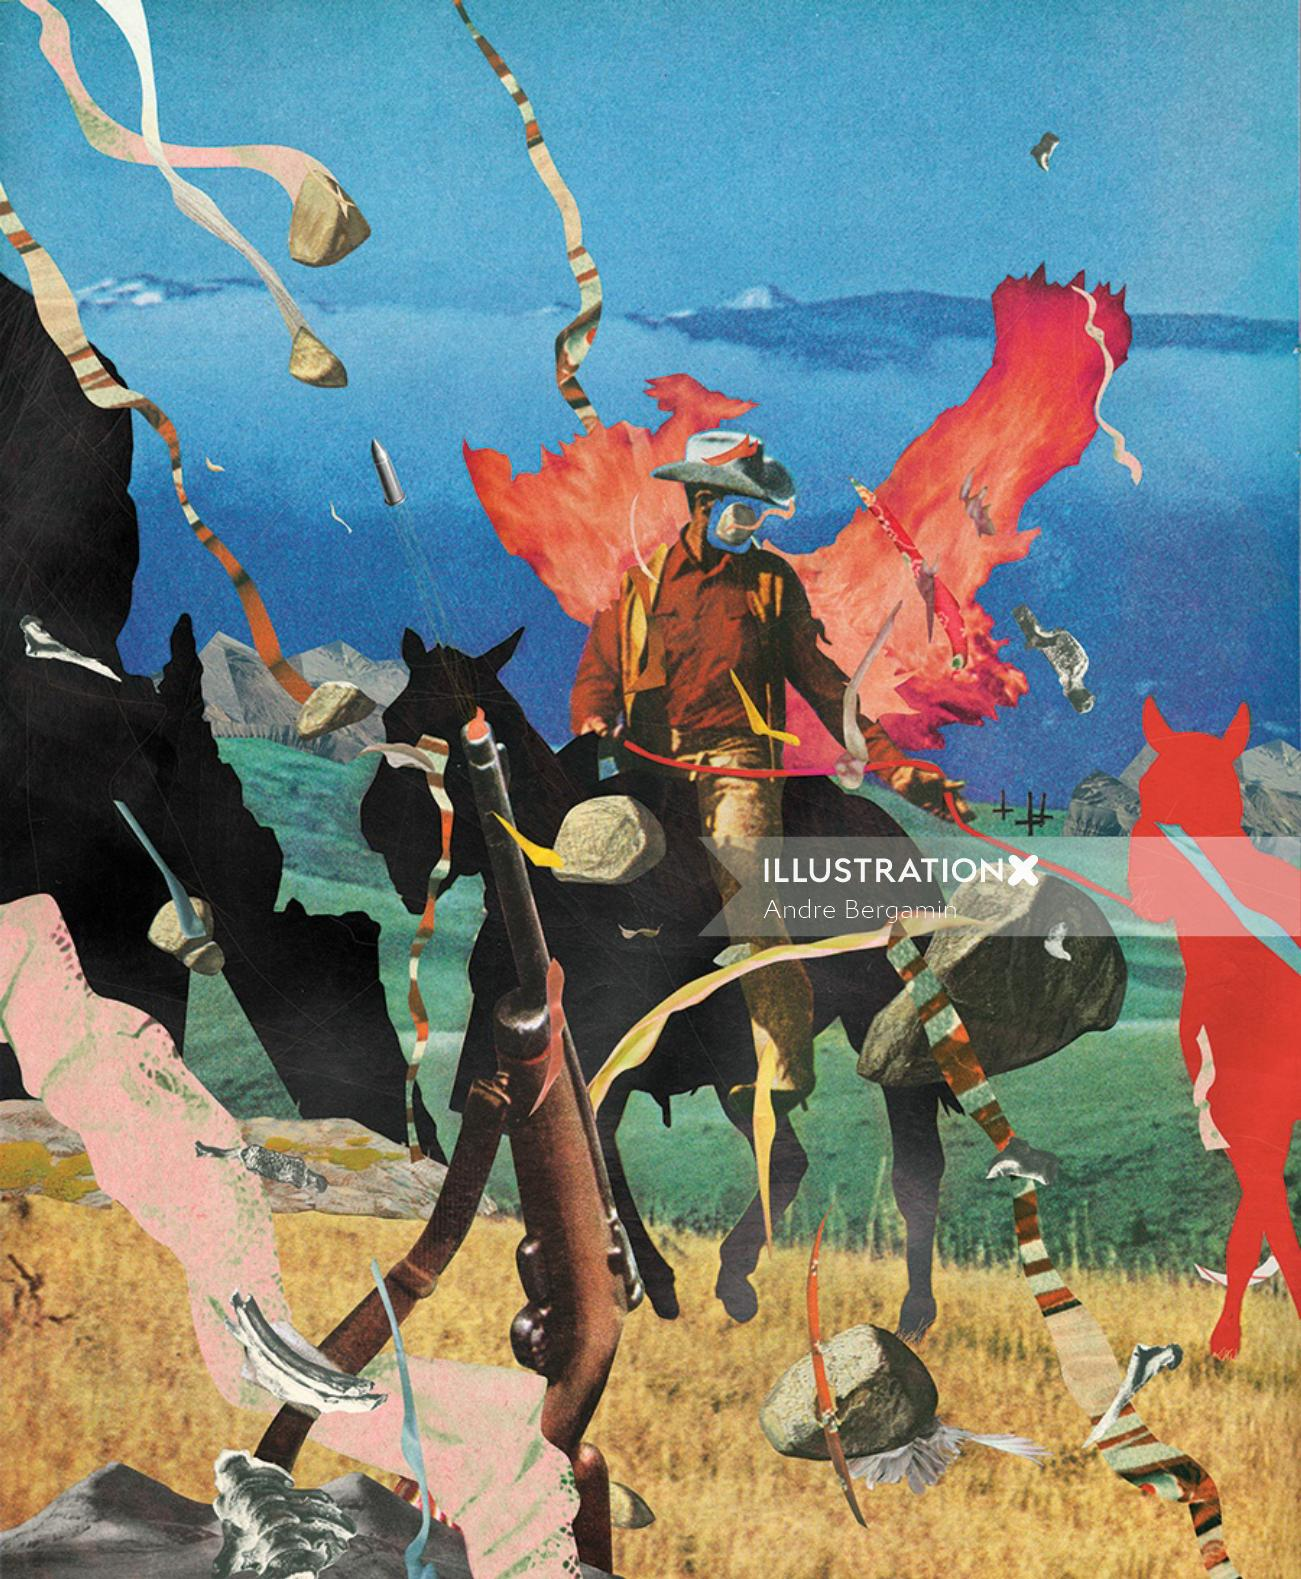 cowboy on horse illustration by Andre Bergamin